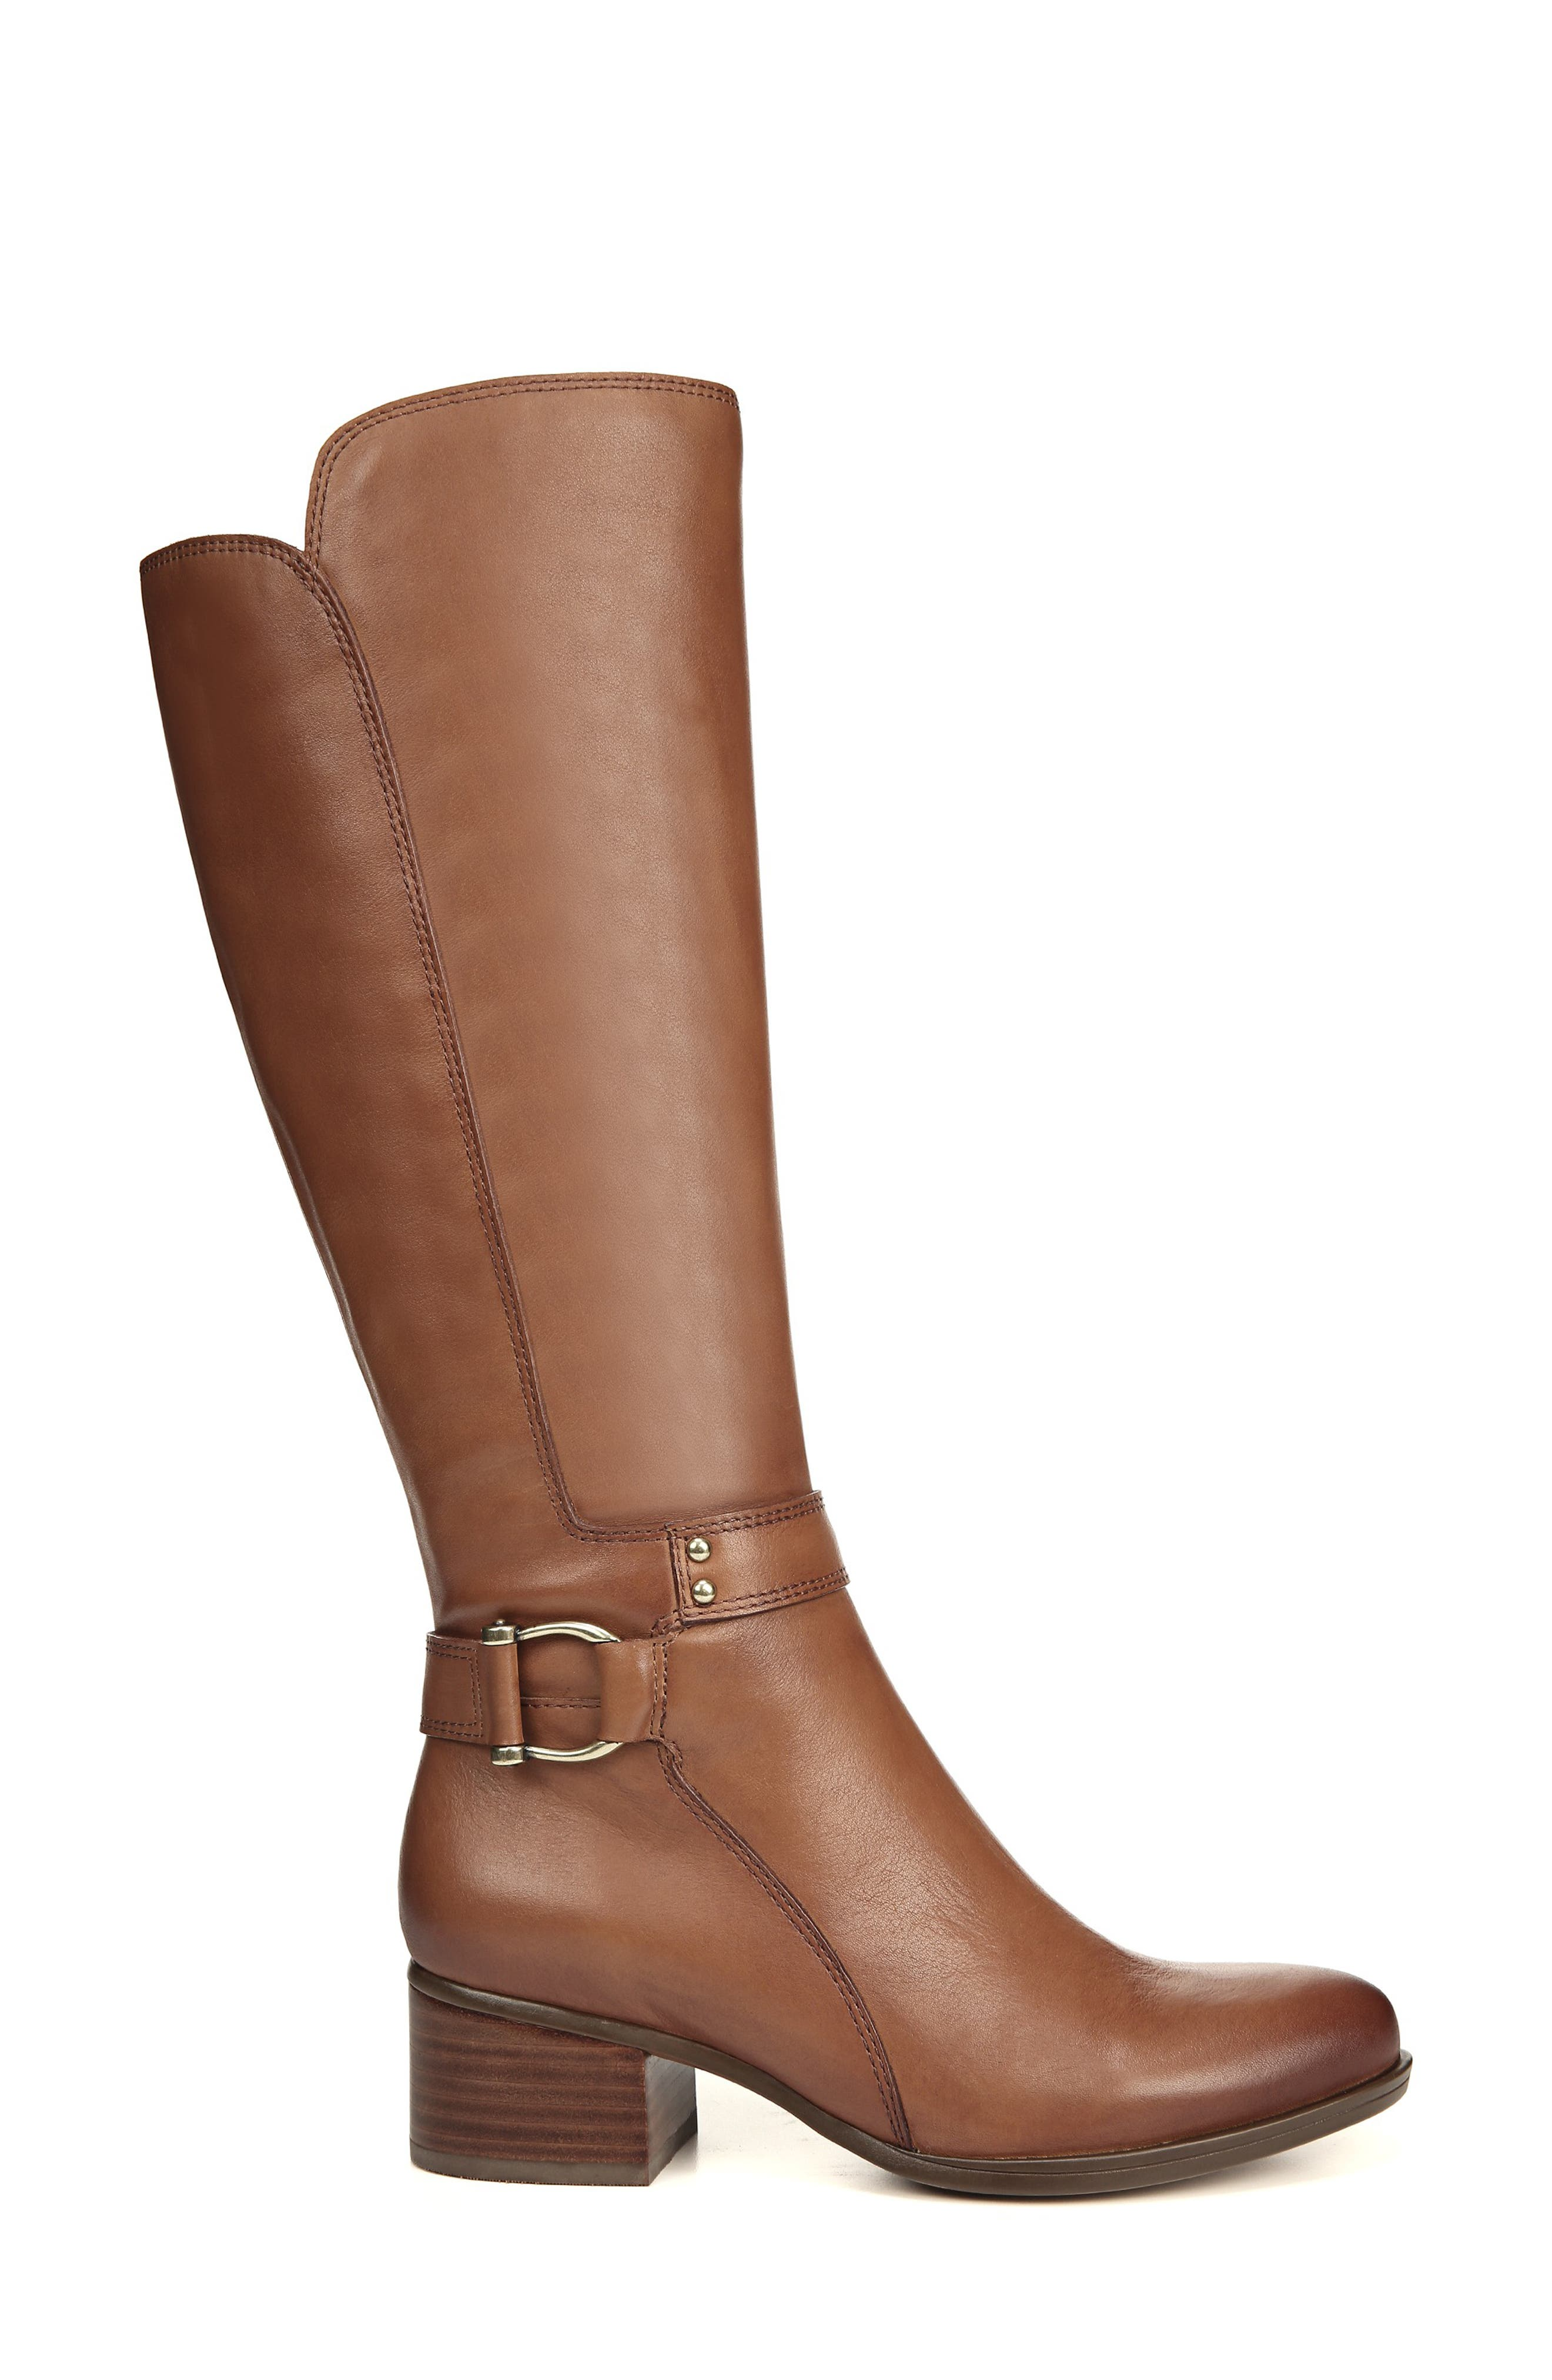 NATURALIZER, Dane Knee High Riding Boot, Alternate thumbnail 3, color, MAPLE LEATHER